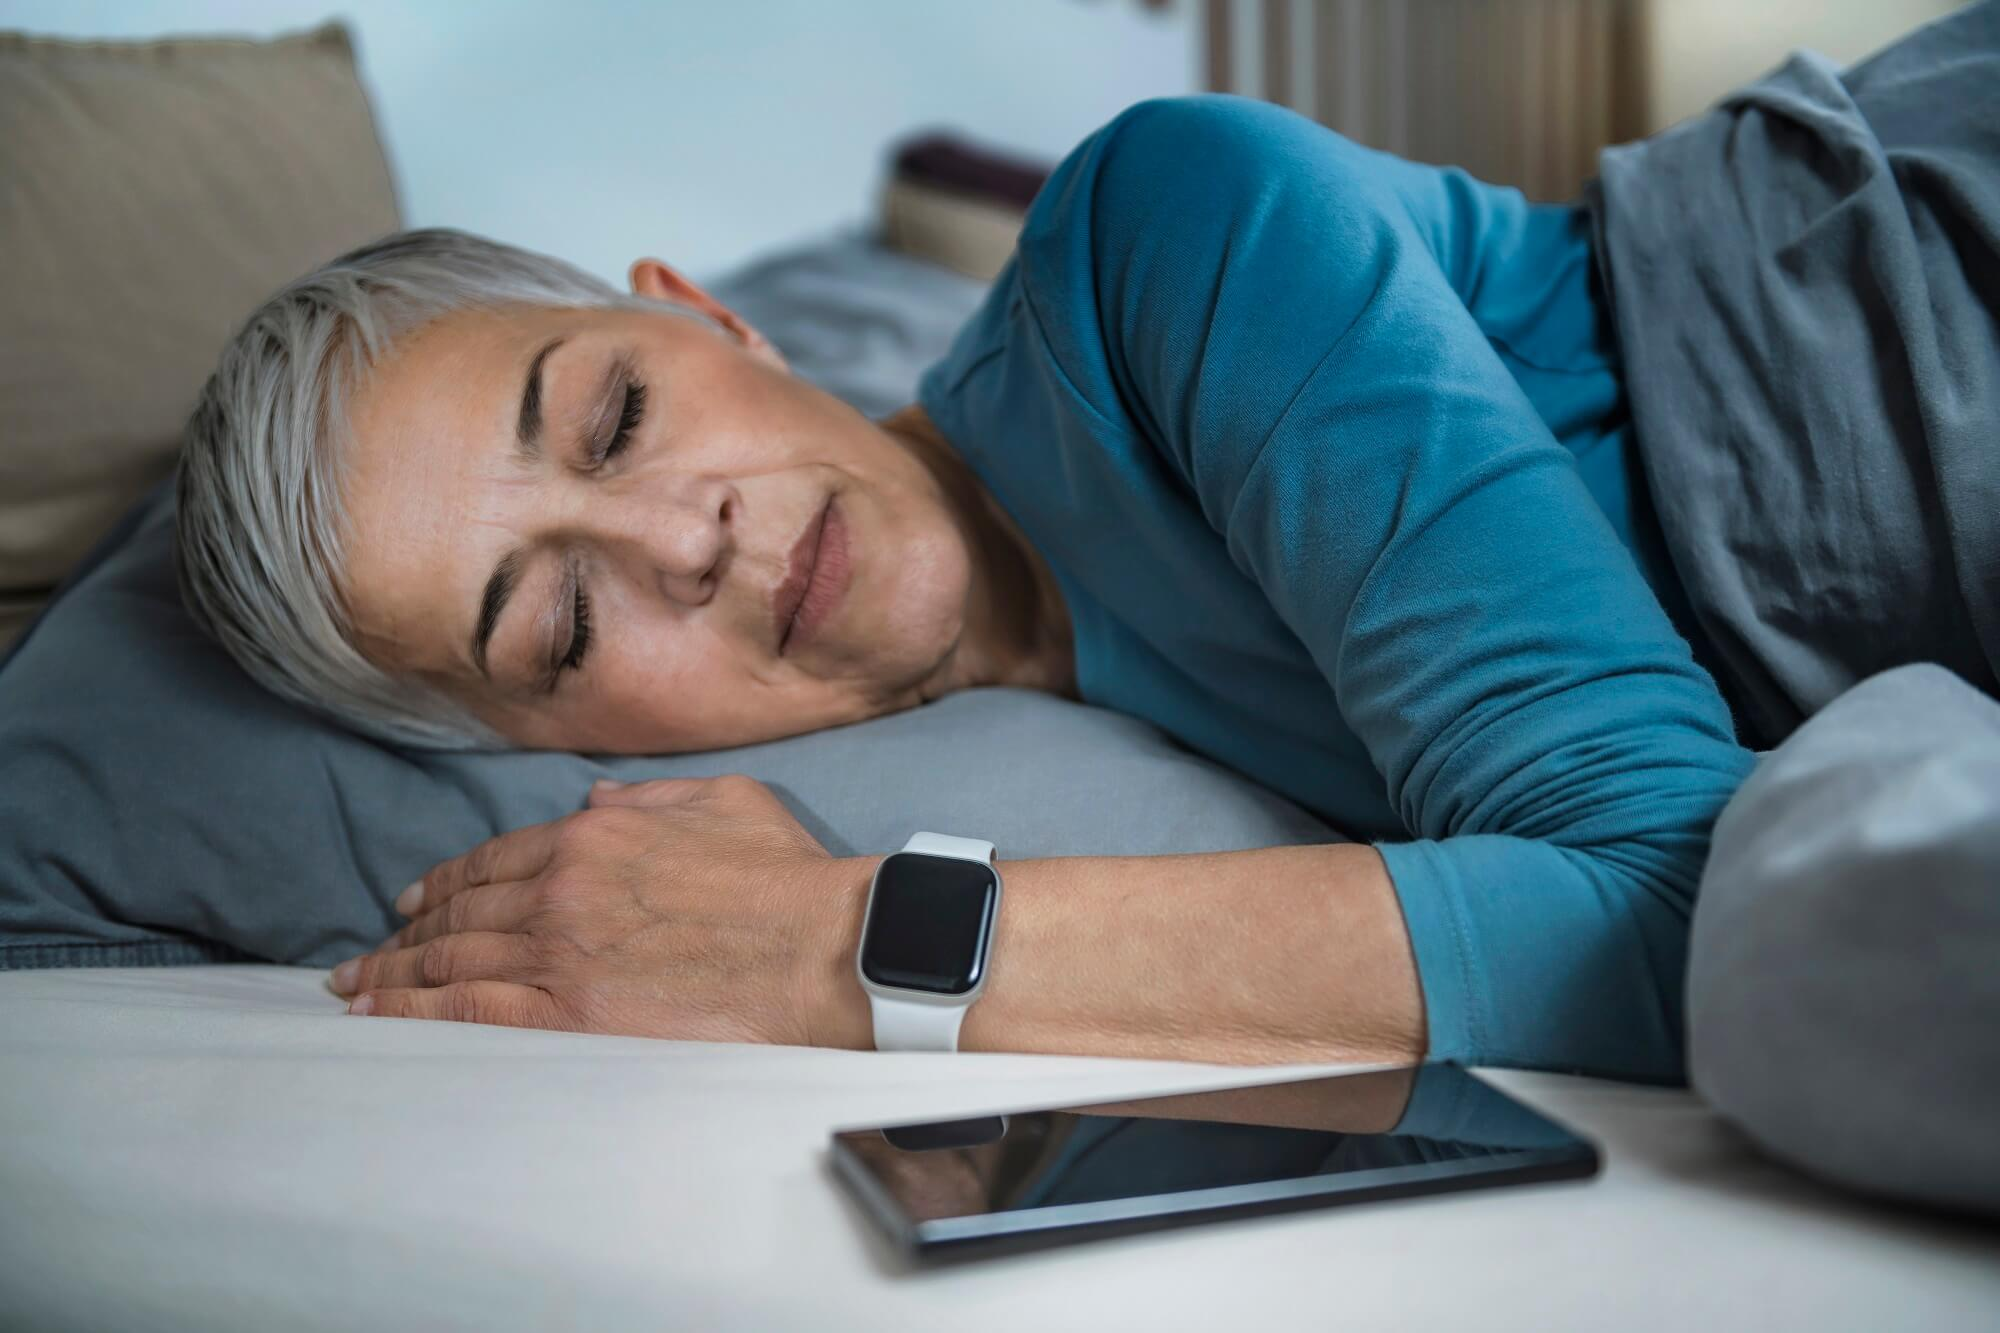 Women Using WatchOS 7 to Improve Her Sleeping Habits